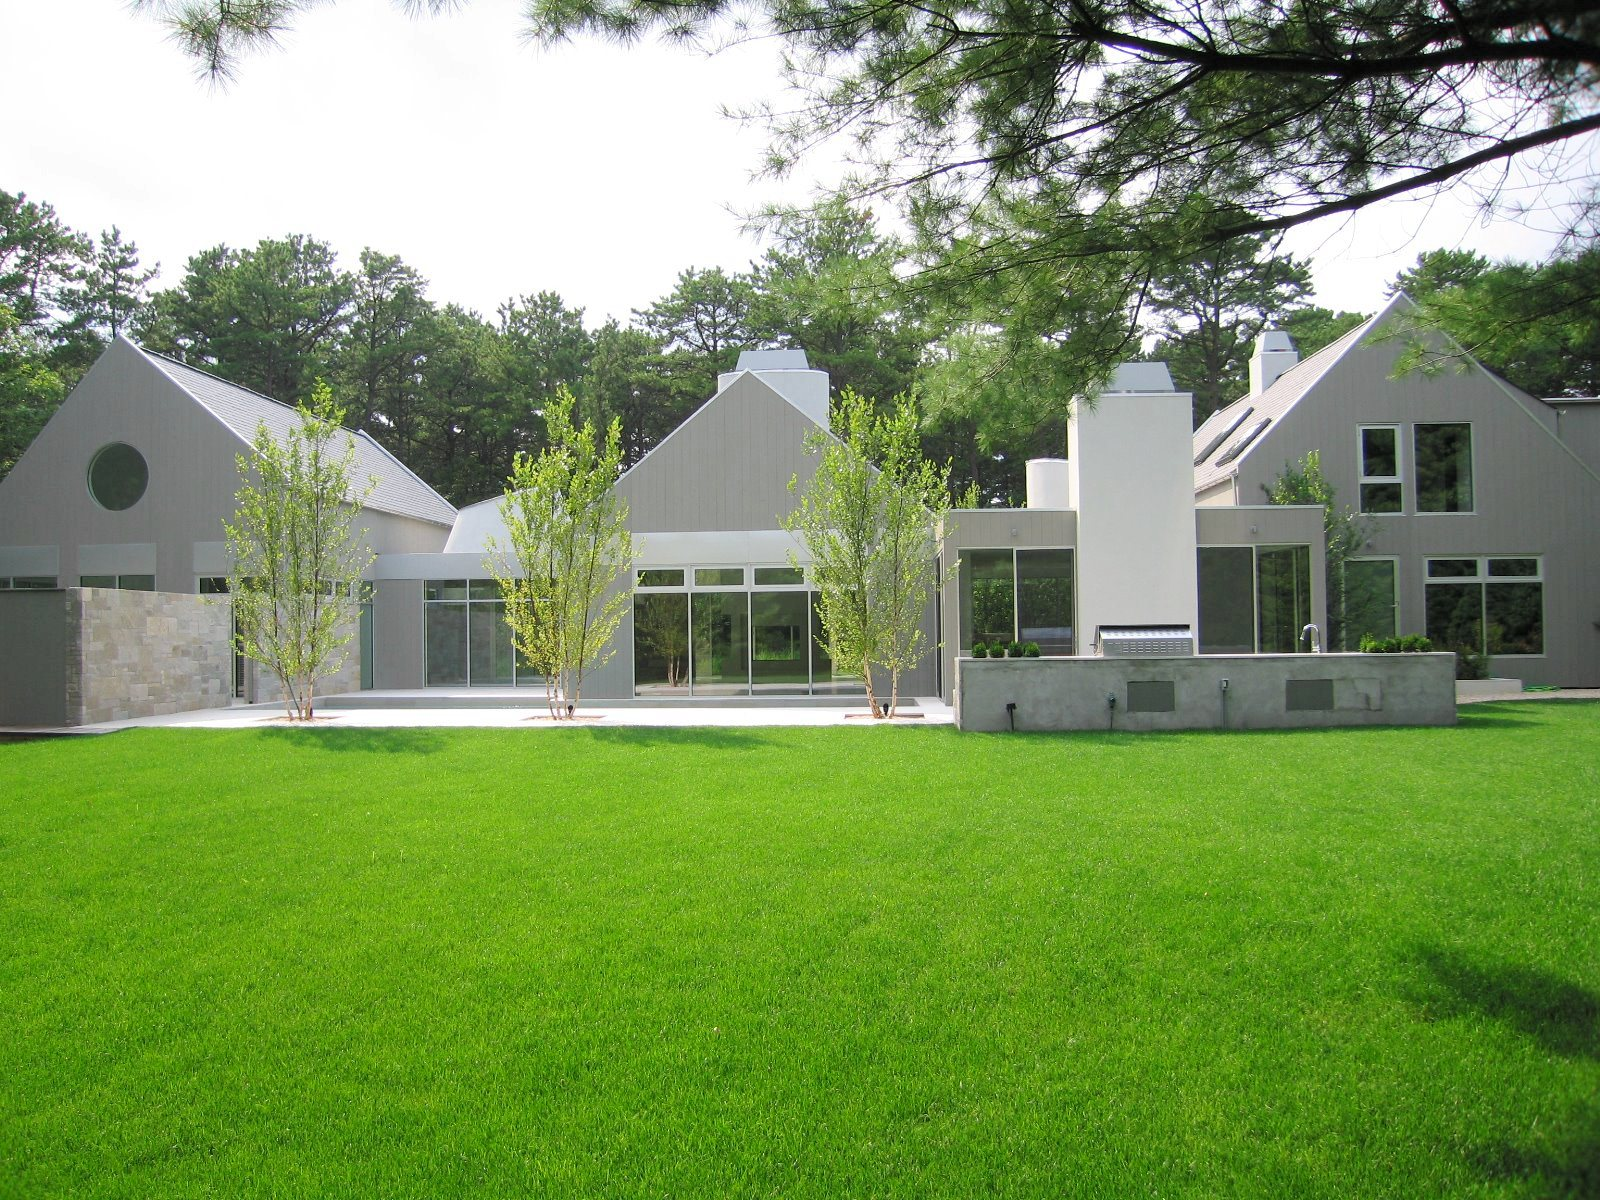 Clasic Colonial Homes See This House White On White In A Modern Hamptons